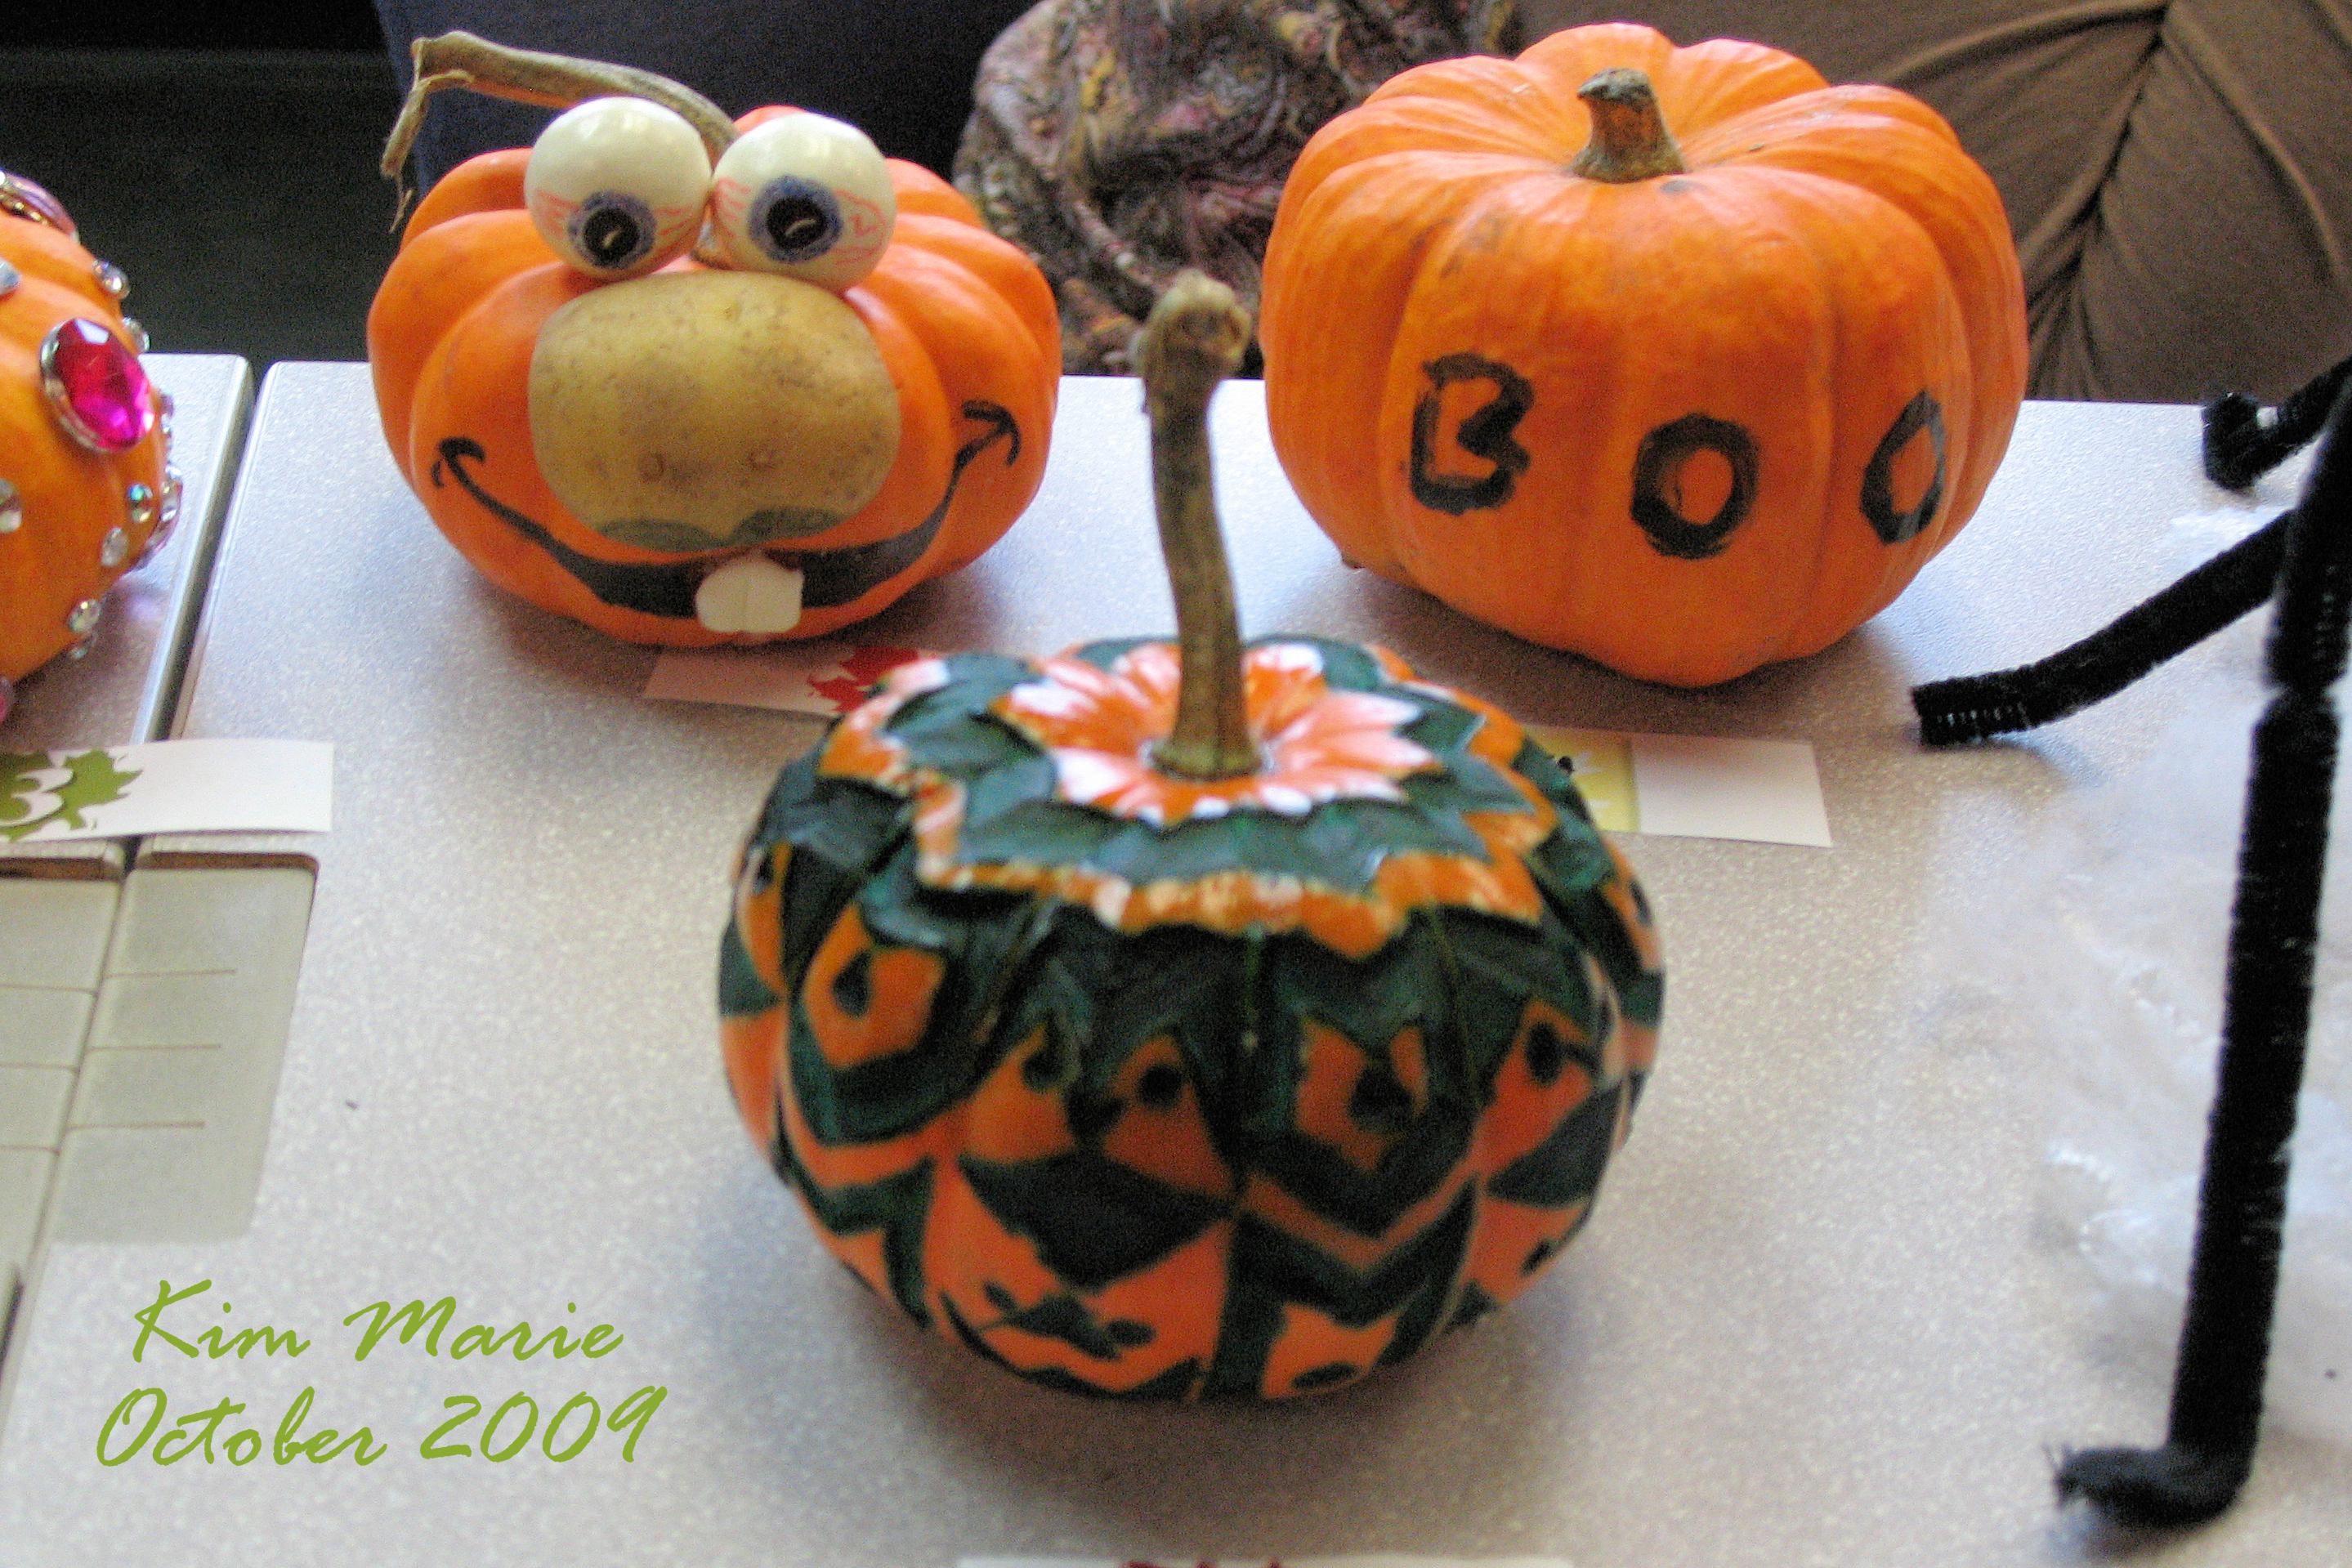 it was intended to be an appetizer of u201ccarved i think it was an intern who added a bit more to mine